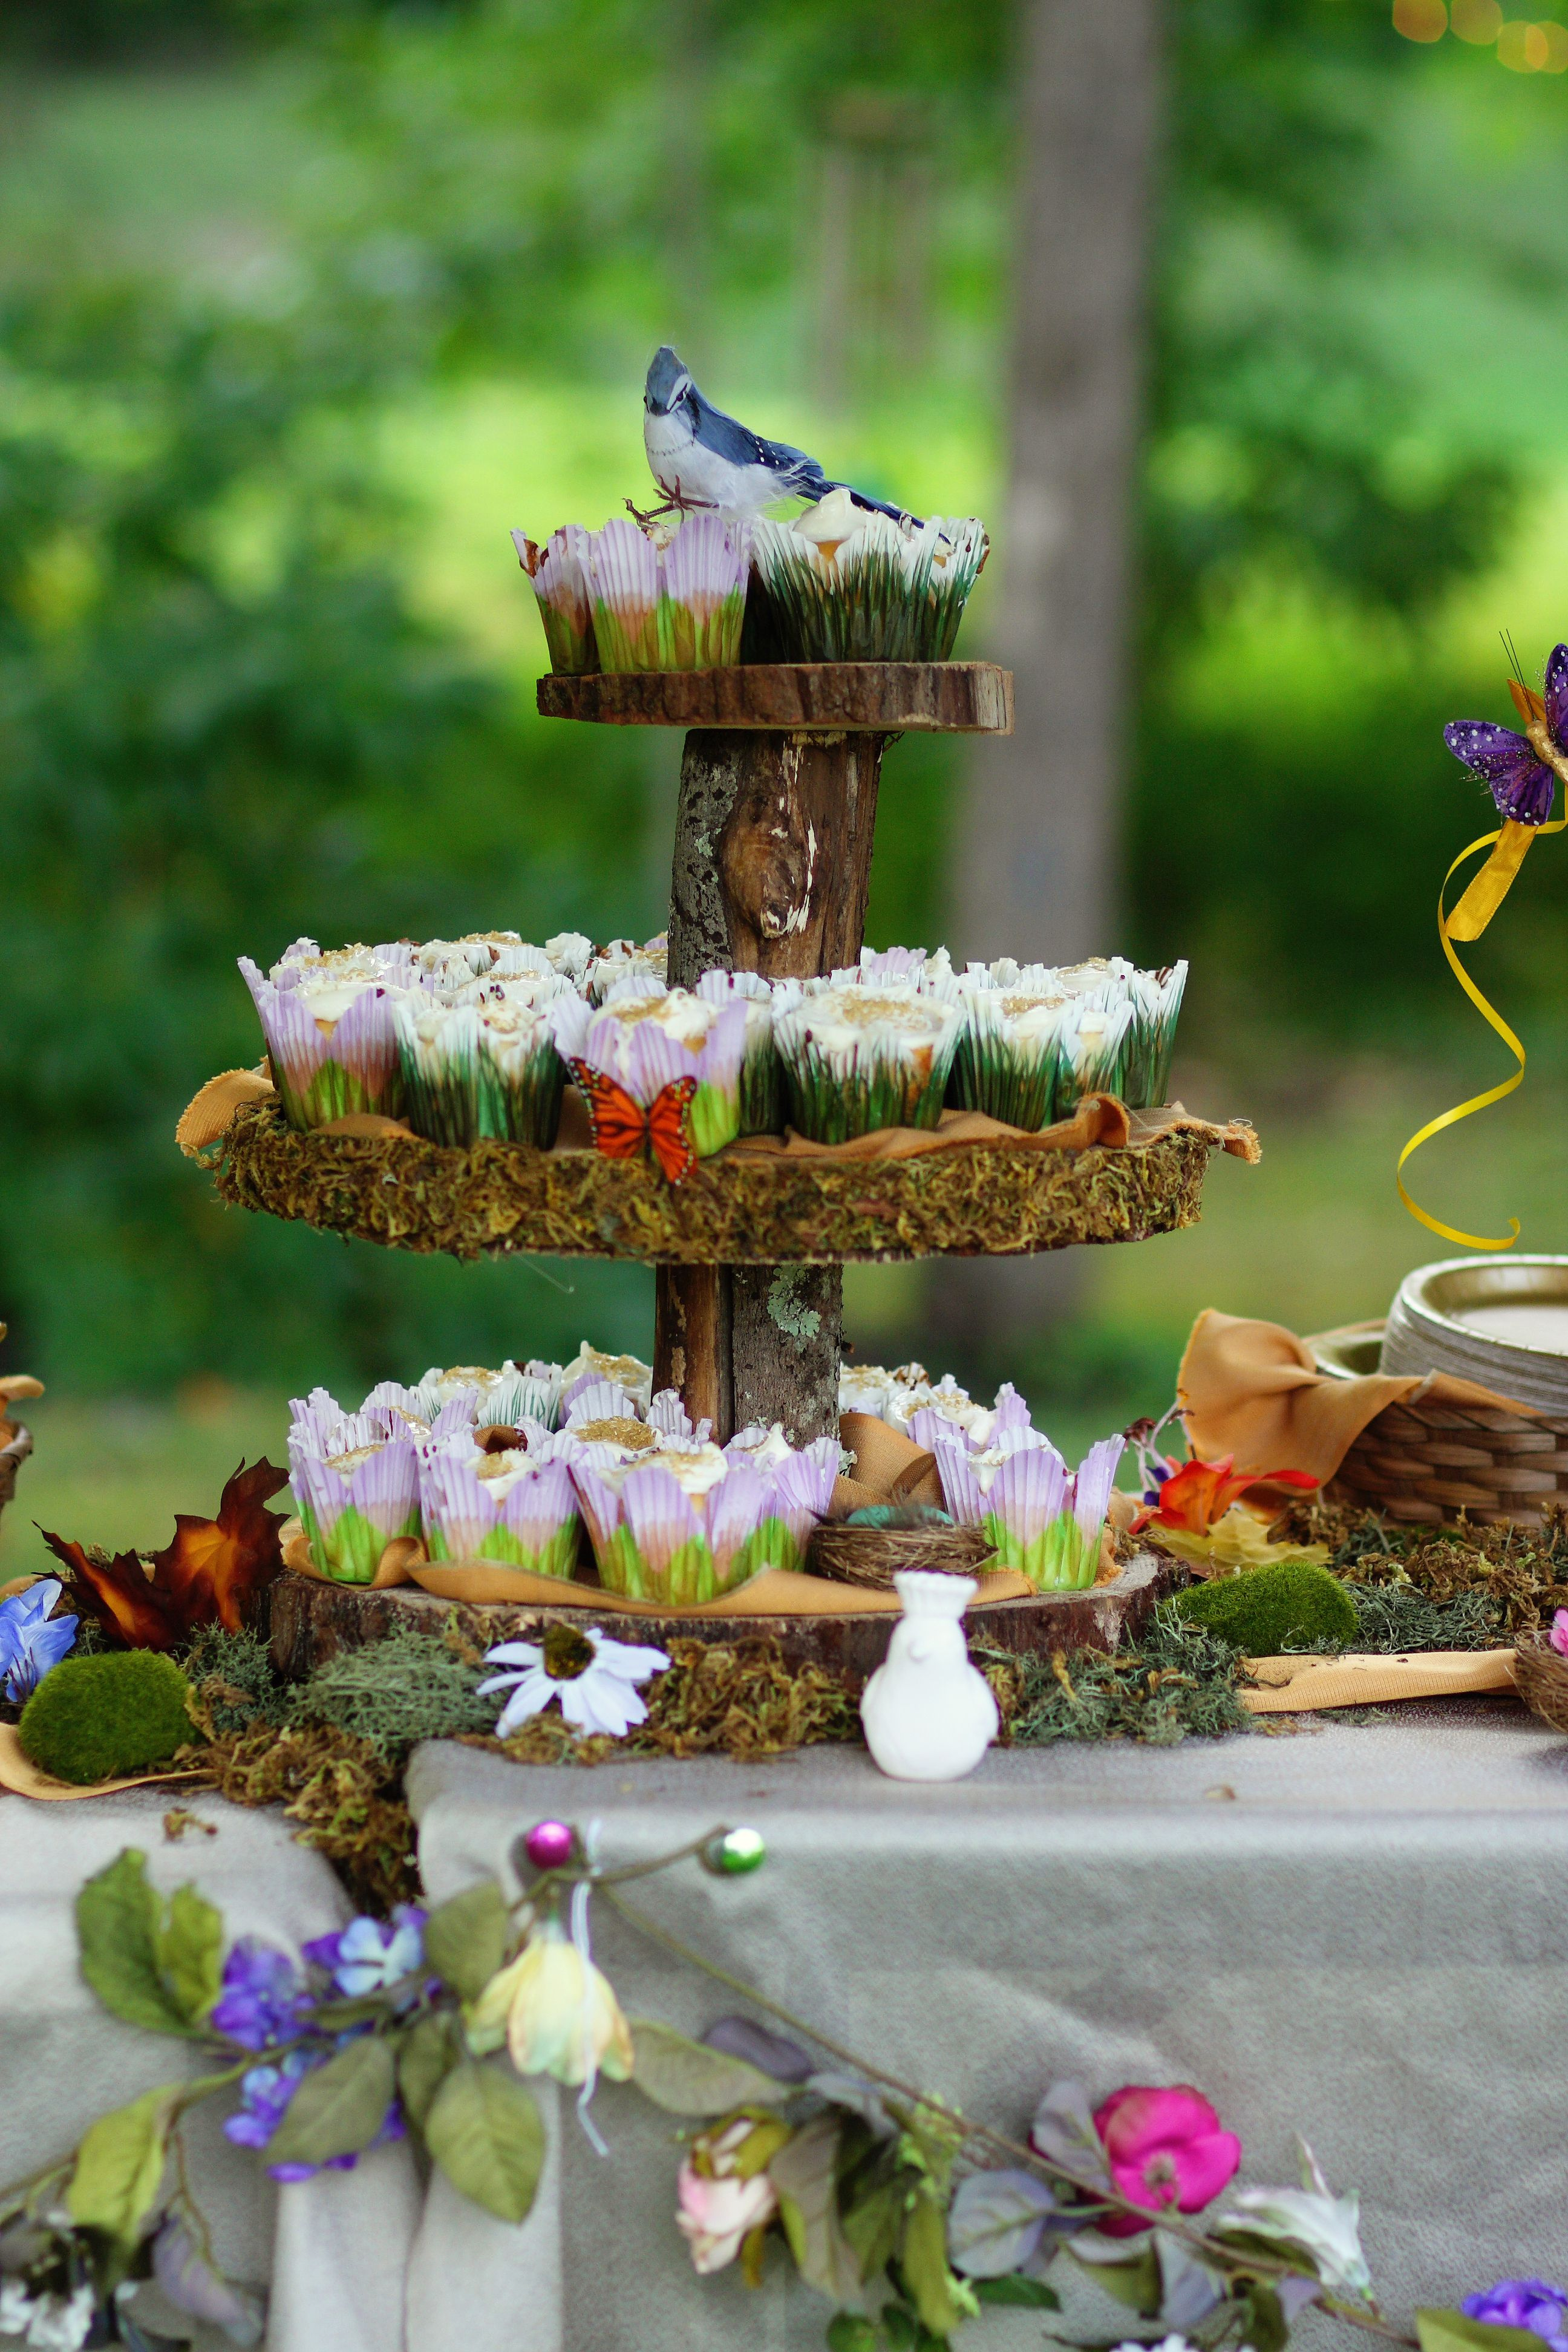 Enchanted Garden: This Is Pretty Extreme But Some Really Cute Ideas! I'm